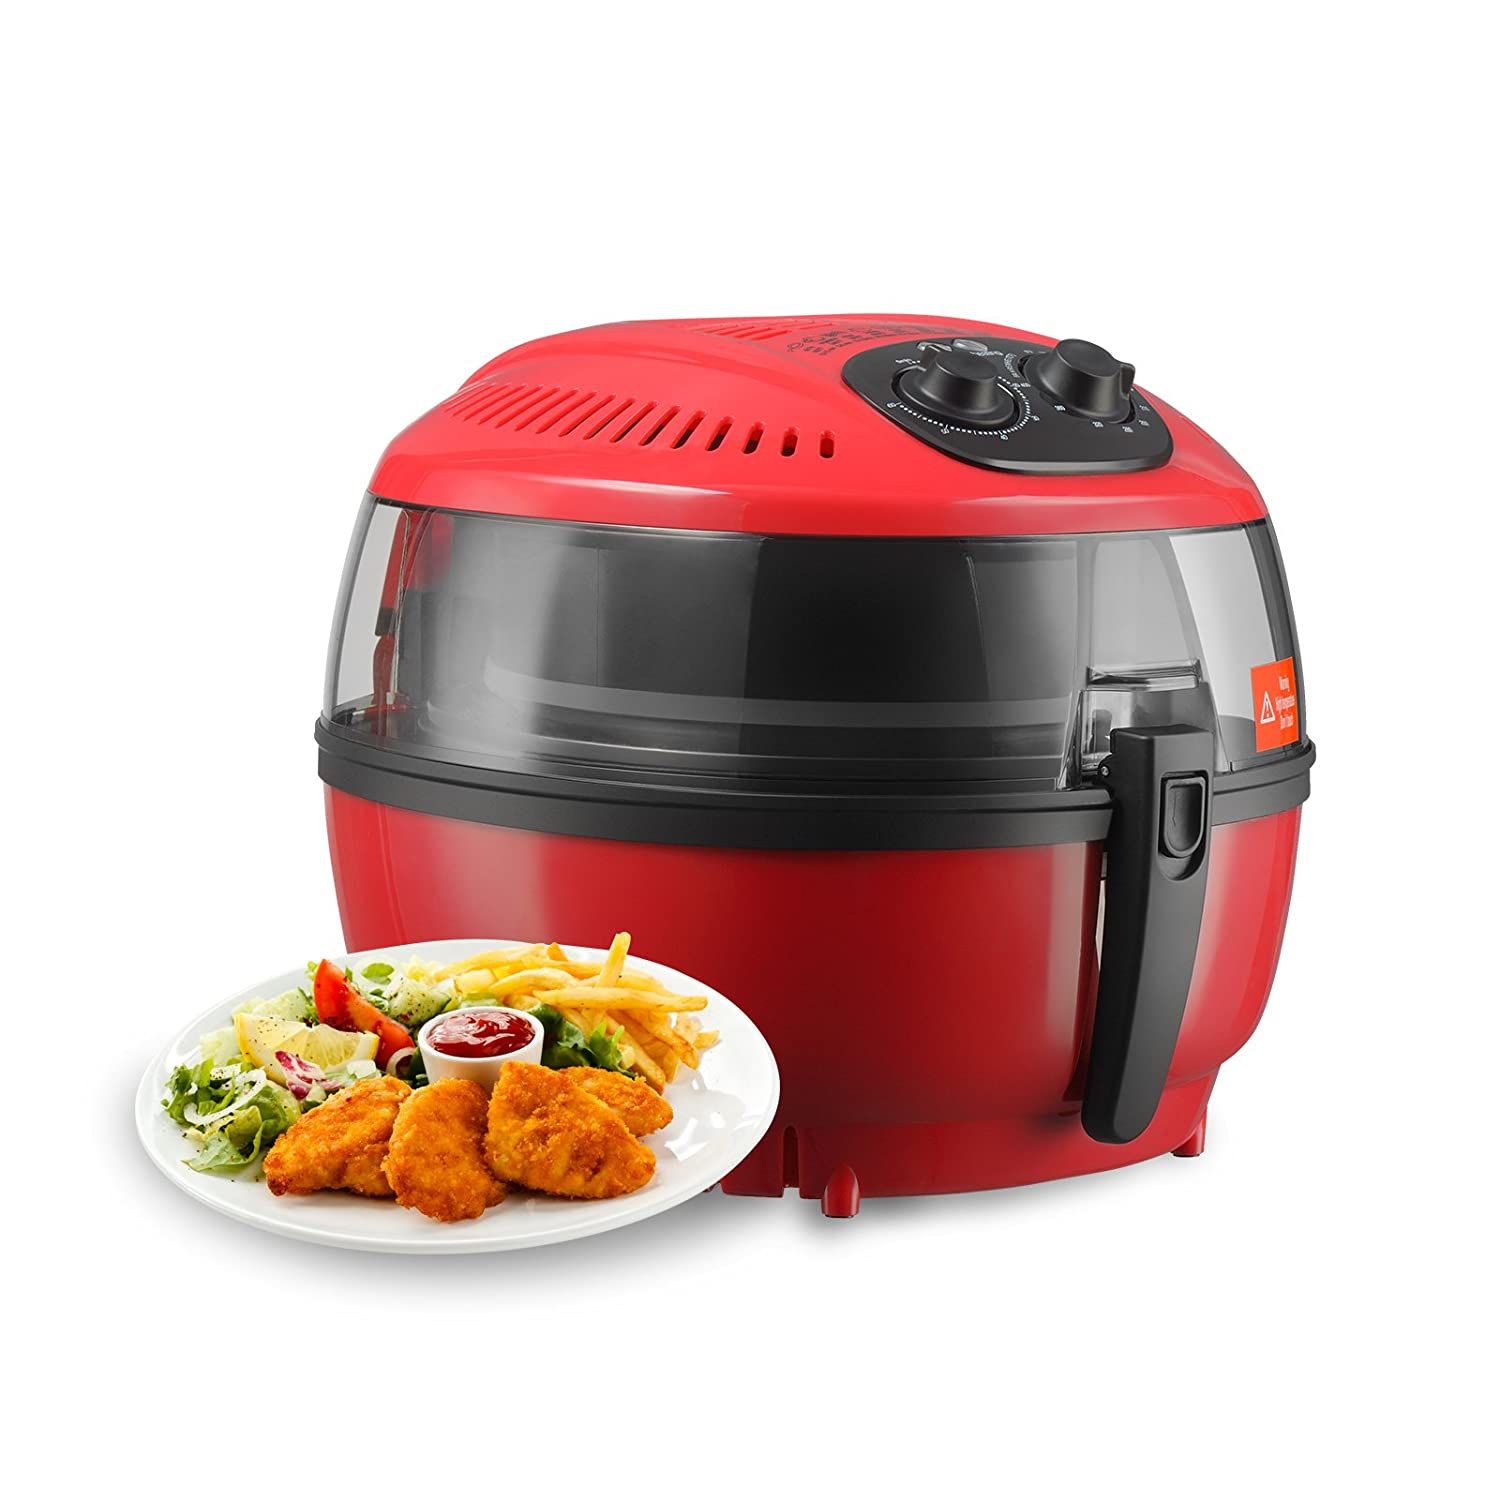 KUPPET Air Fryer-Hot Air/Deep Fryer with Basket/Rapid Air Technology For Less or No Oil/Timer & Temperature Control/8 Cooking Presets/Included Recipe,Steamer,Fryer Pan (7.4QT, Red)